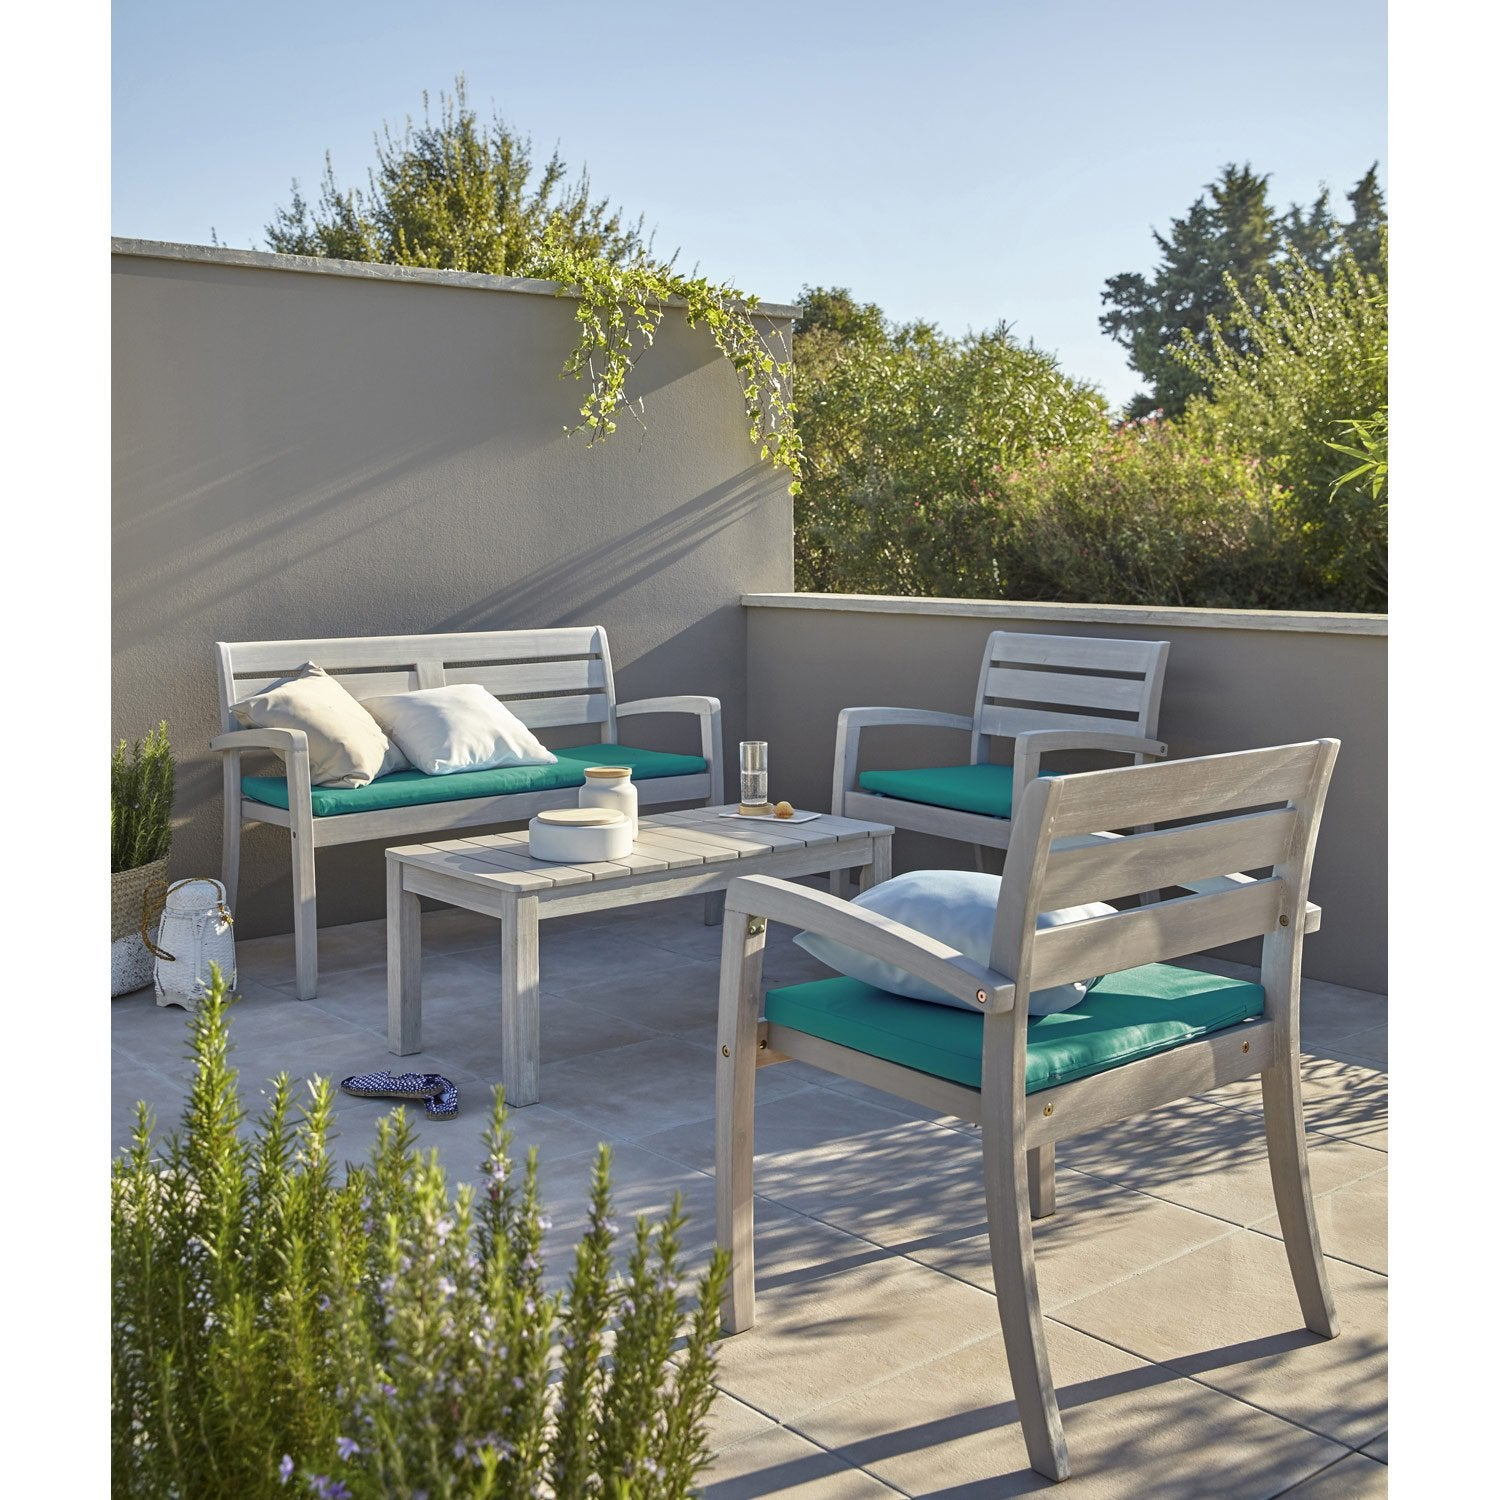 Salon de jardin portofino bois naturel 1 table 2 for Balancines para jardin leroy merlin